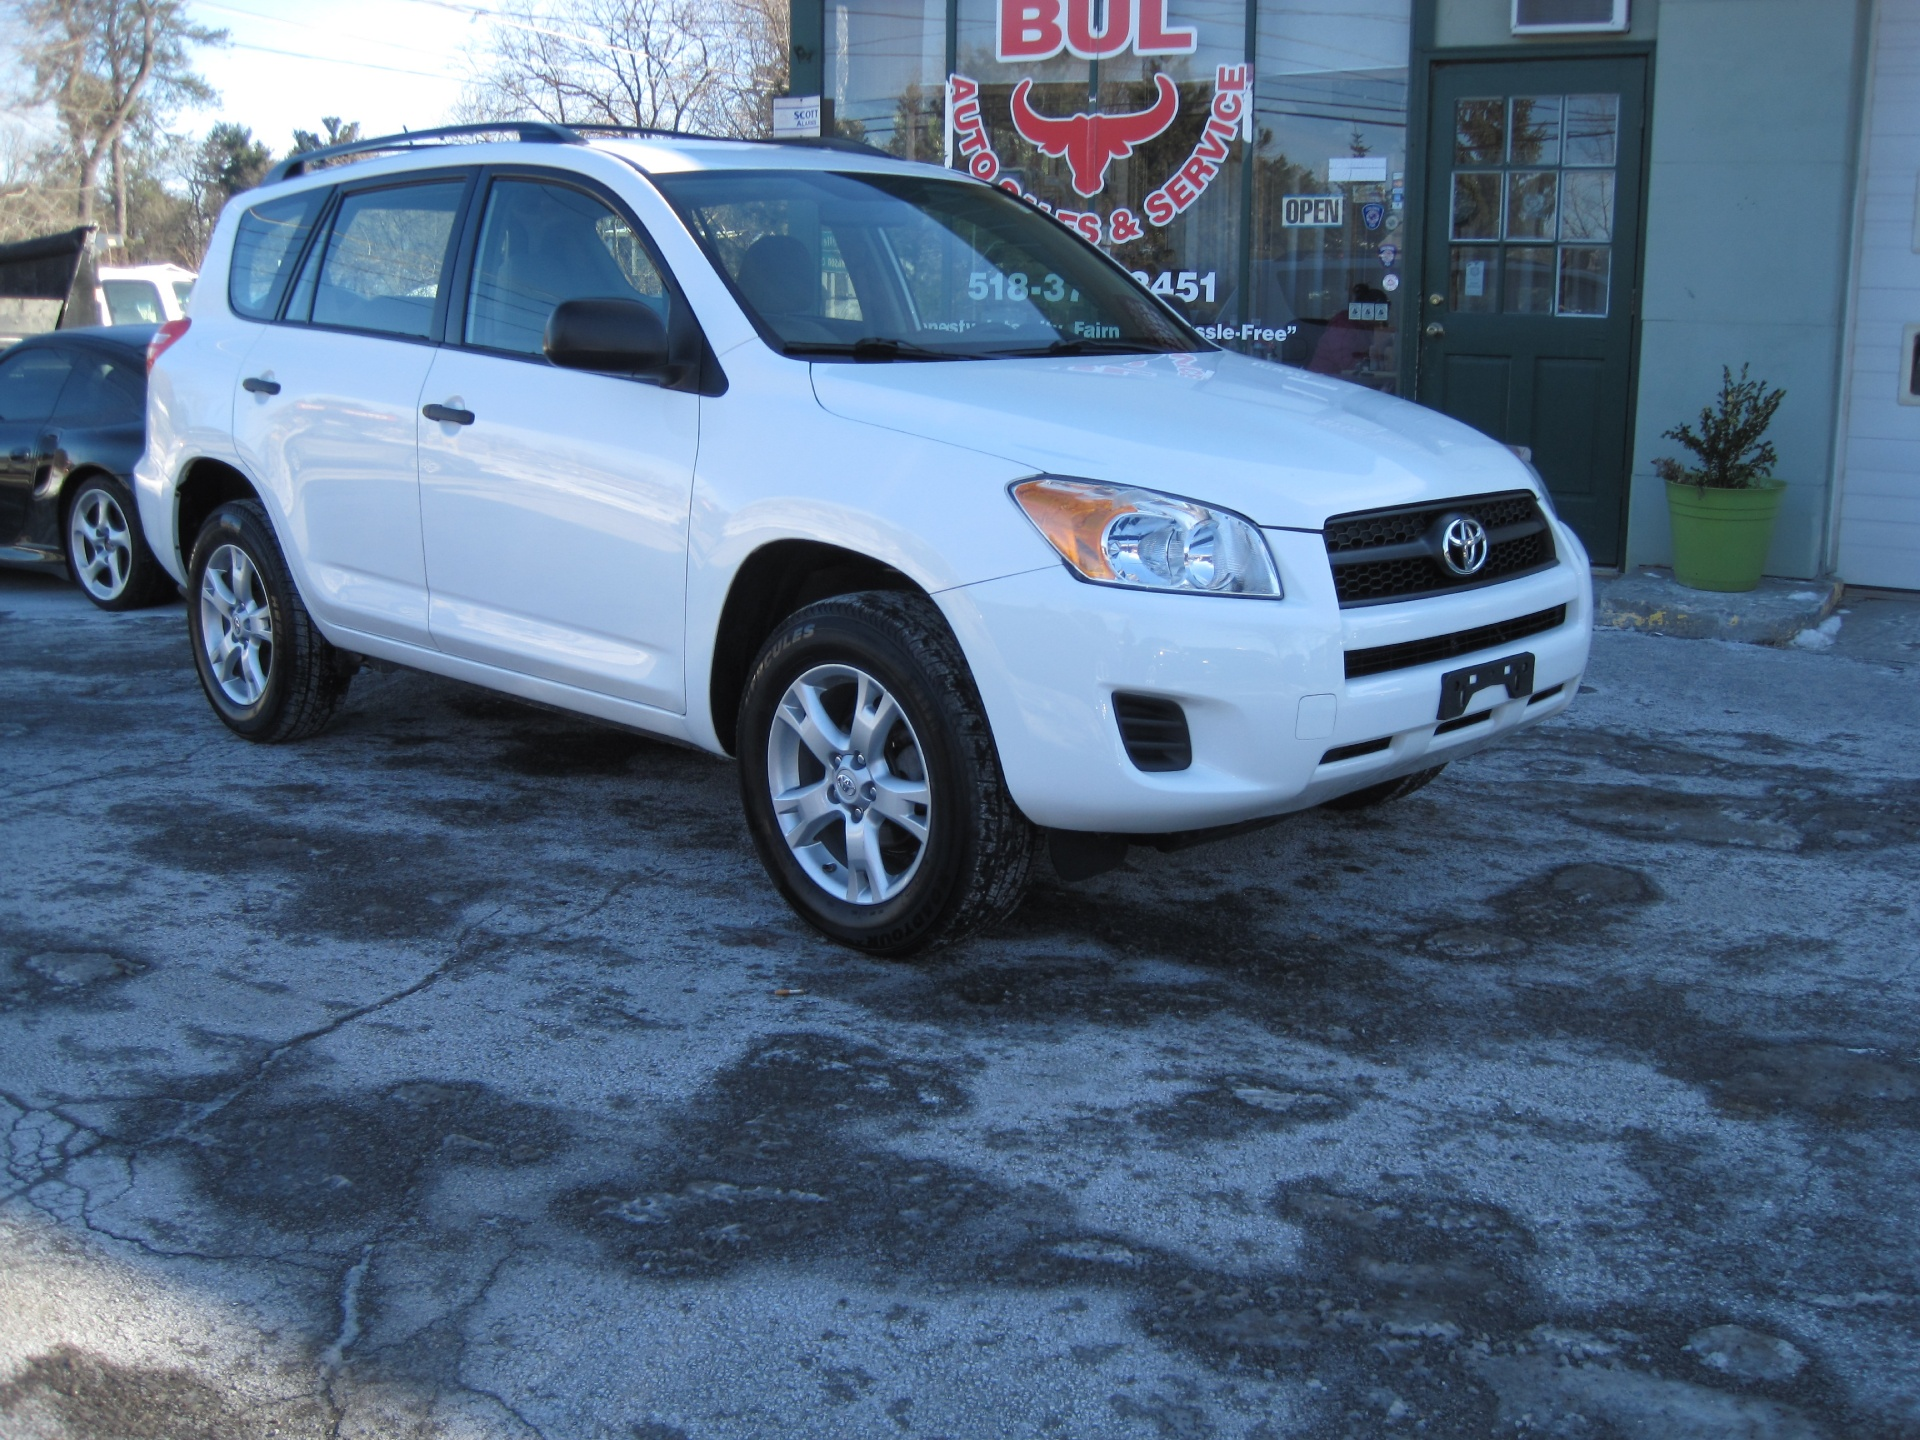 Used Cars for Sale by Owner Near Me Inspirational 2009 toyota Rav4 4wd Local New Car Trade 2 Owner Stock for